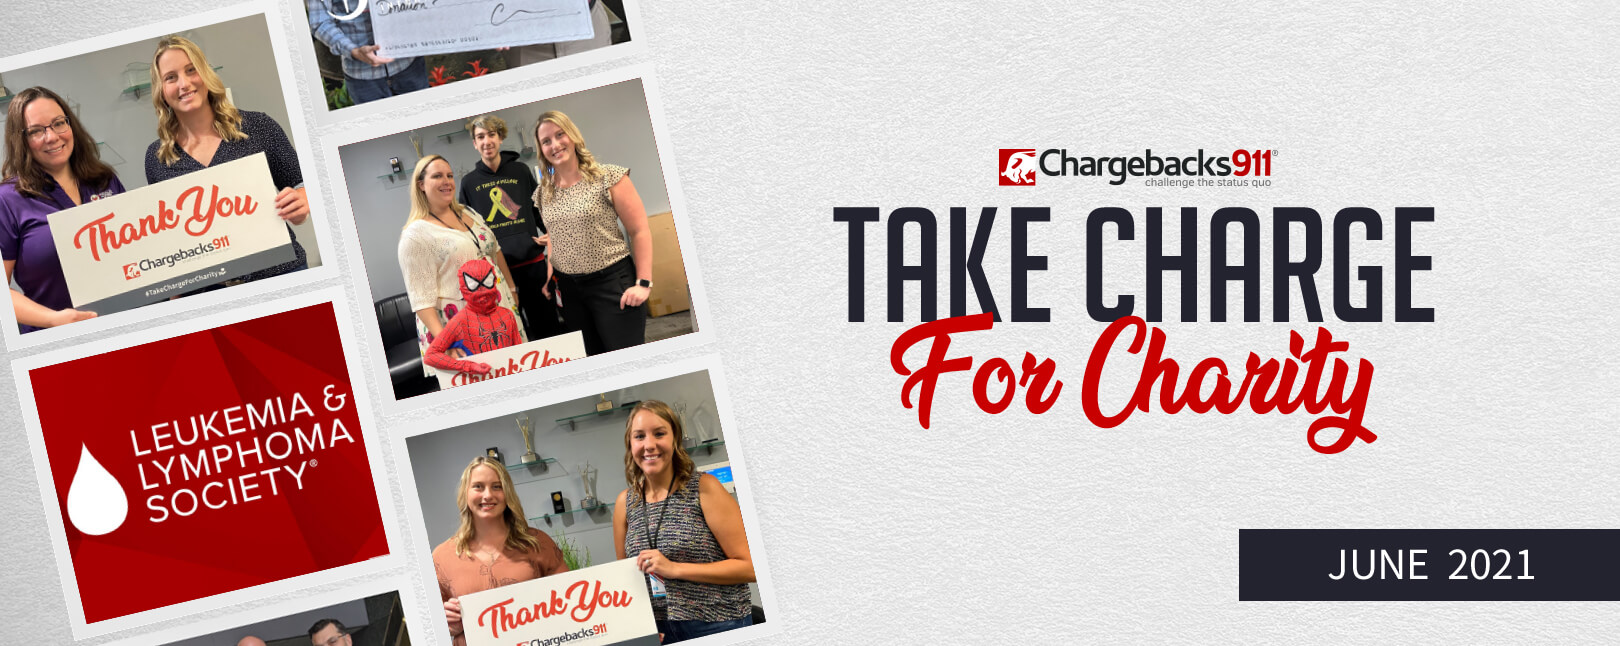 Take Charge for Charity – June 2021